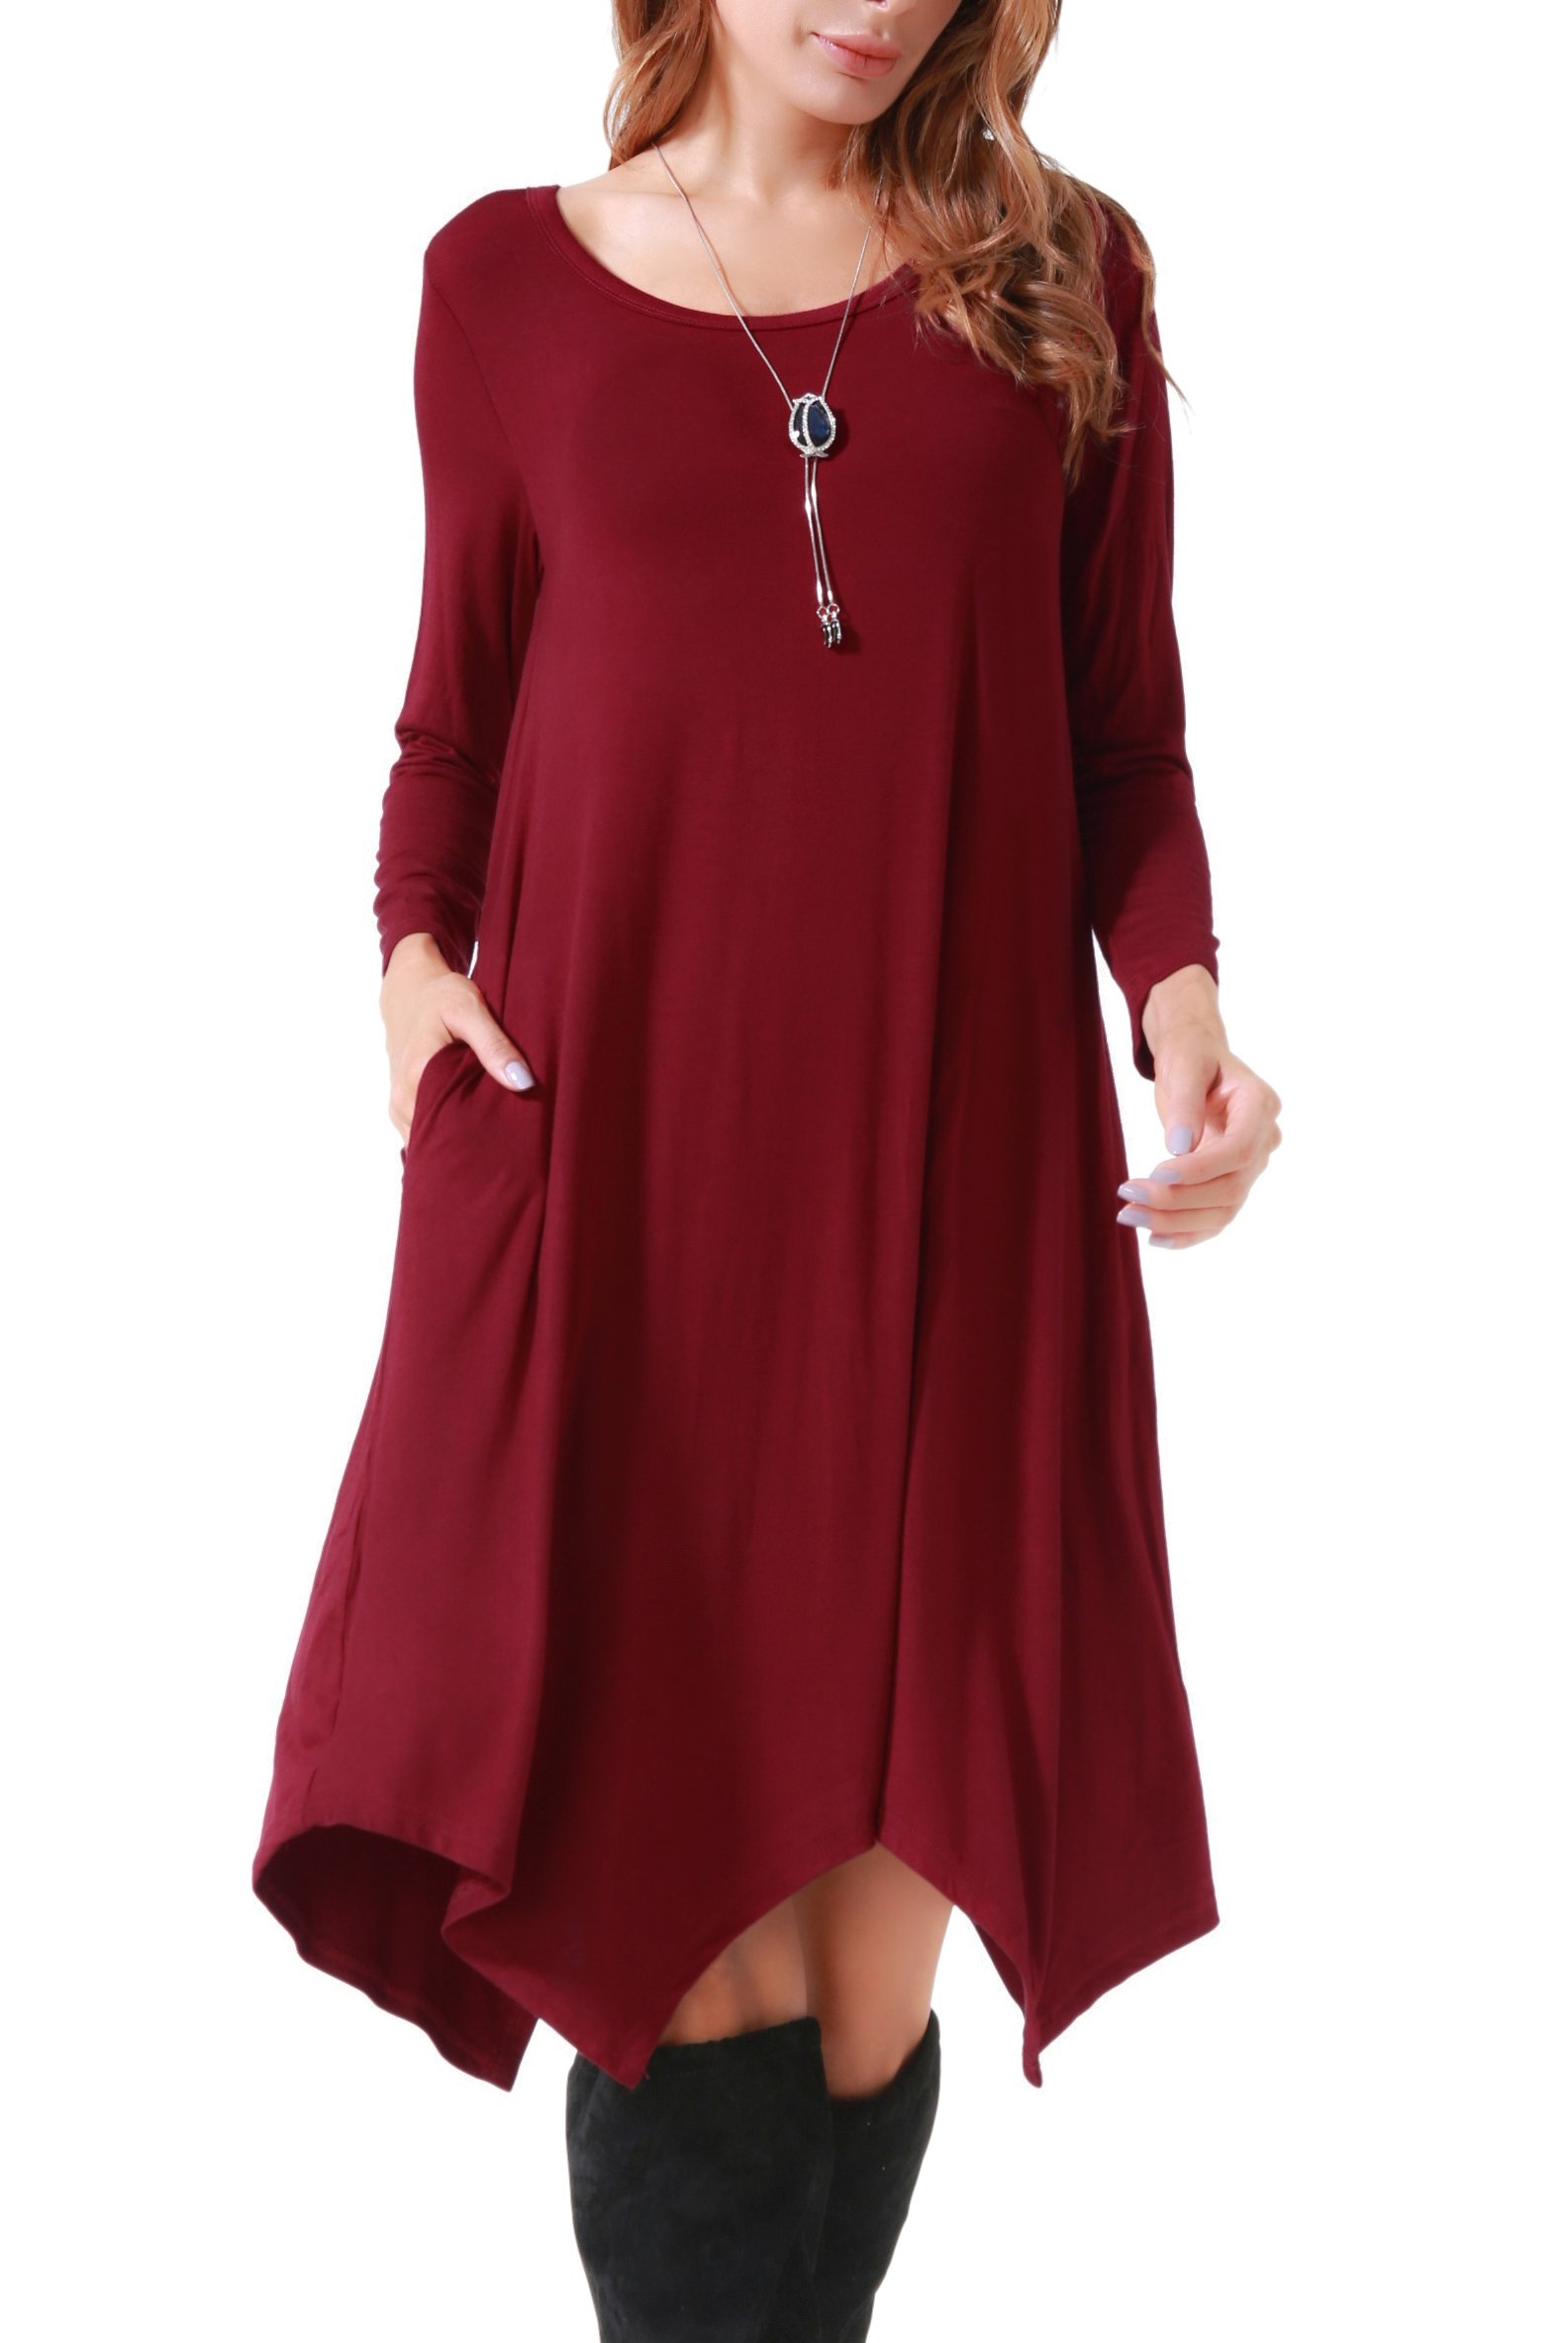 Invug Women Casual Loose Soft Crewneck Long Sleeve Pockets Swing T-shirt Dress Dark Red XXL by Invug (Image #7)